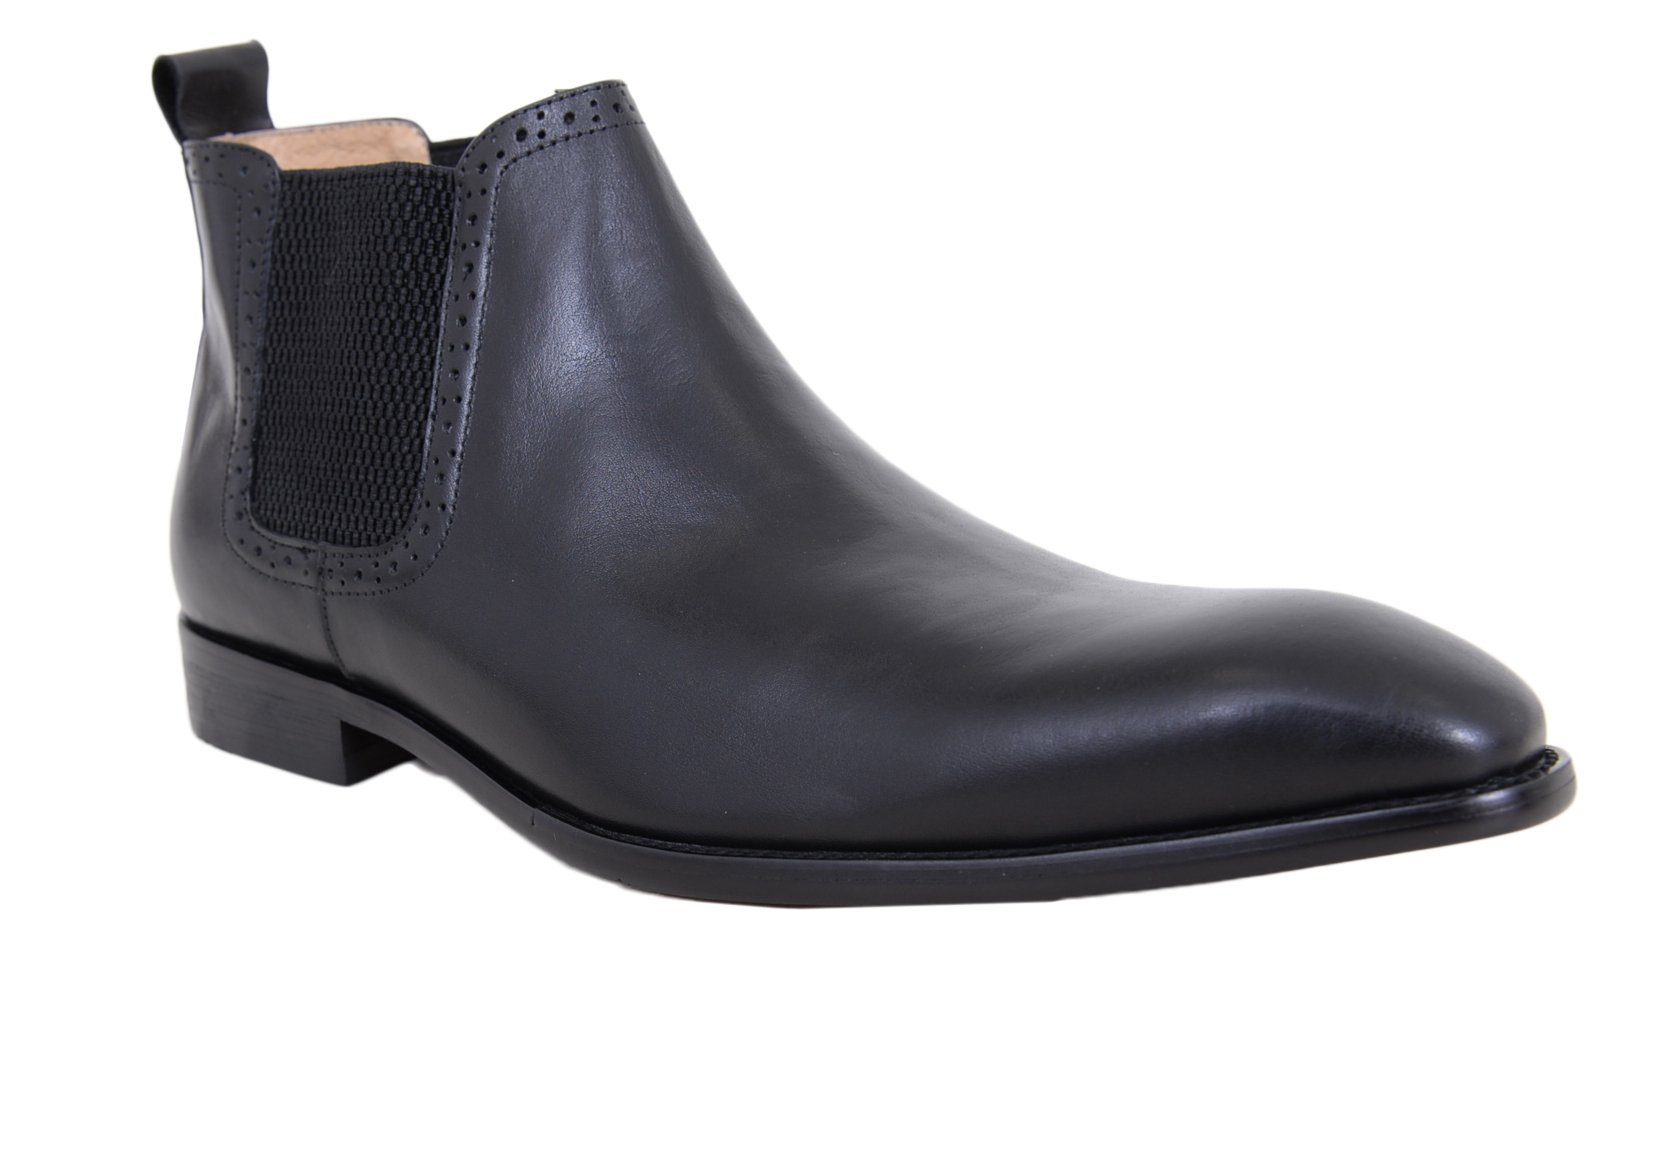 Carrucci Solid Black Slip On Leather Ankle Chelsea Dress Boots